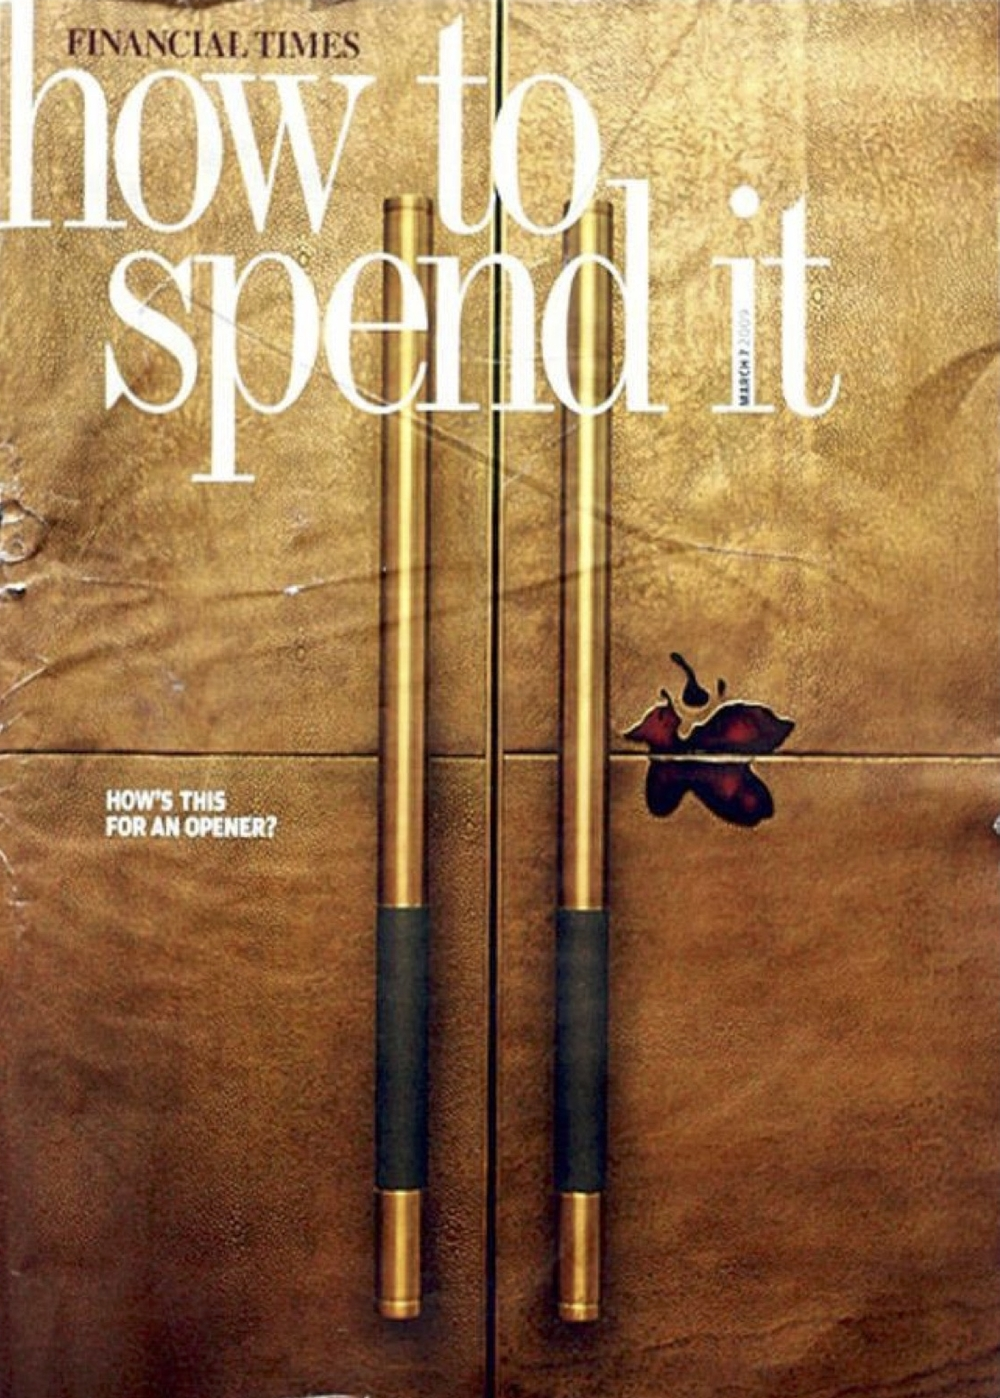 Financial Times How to Spend It_2009.jpg